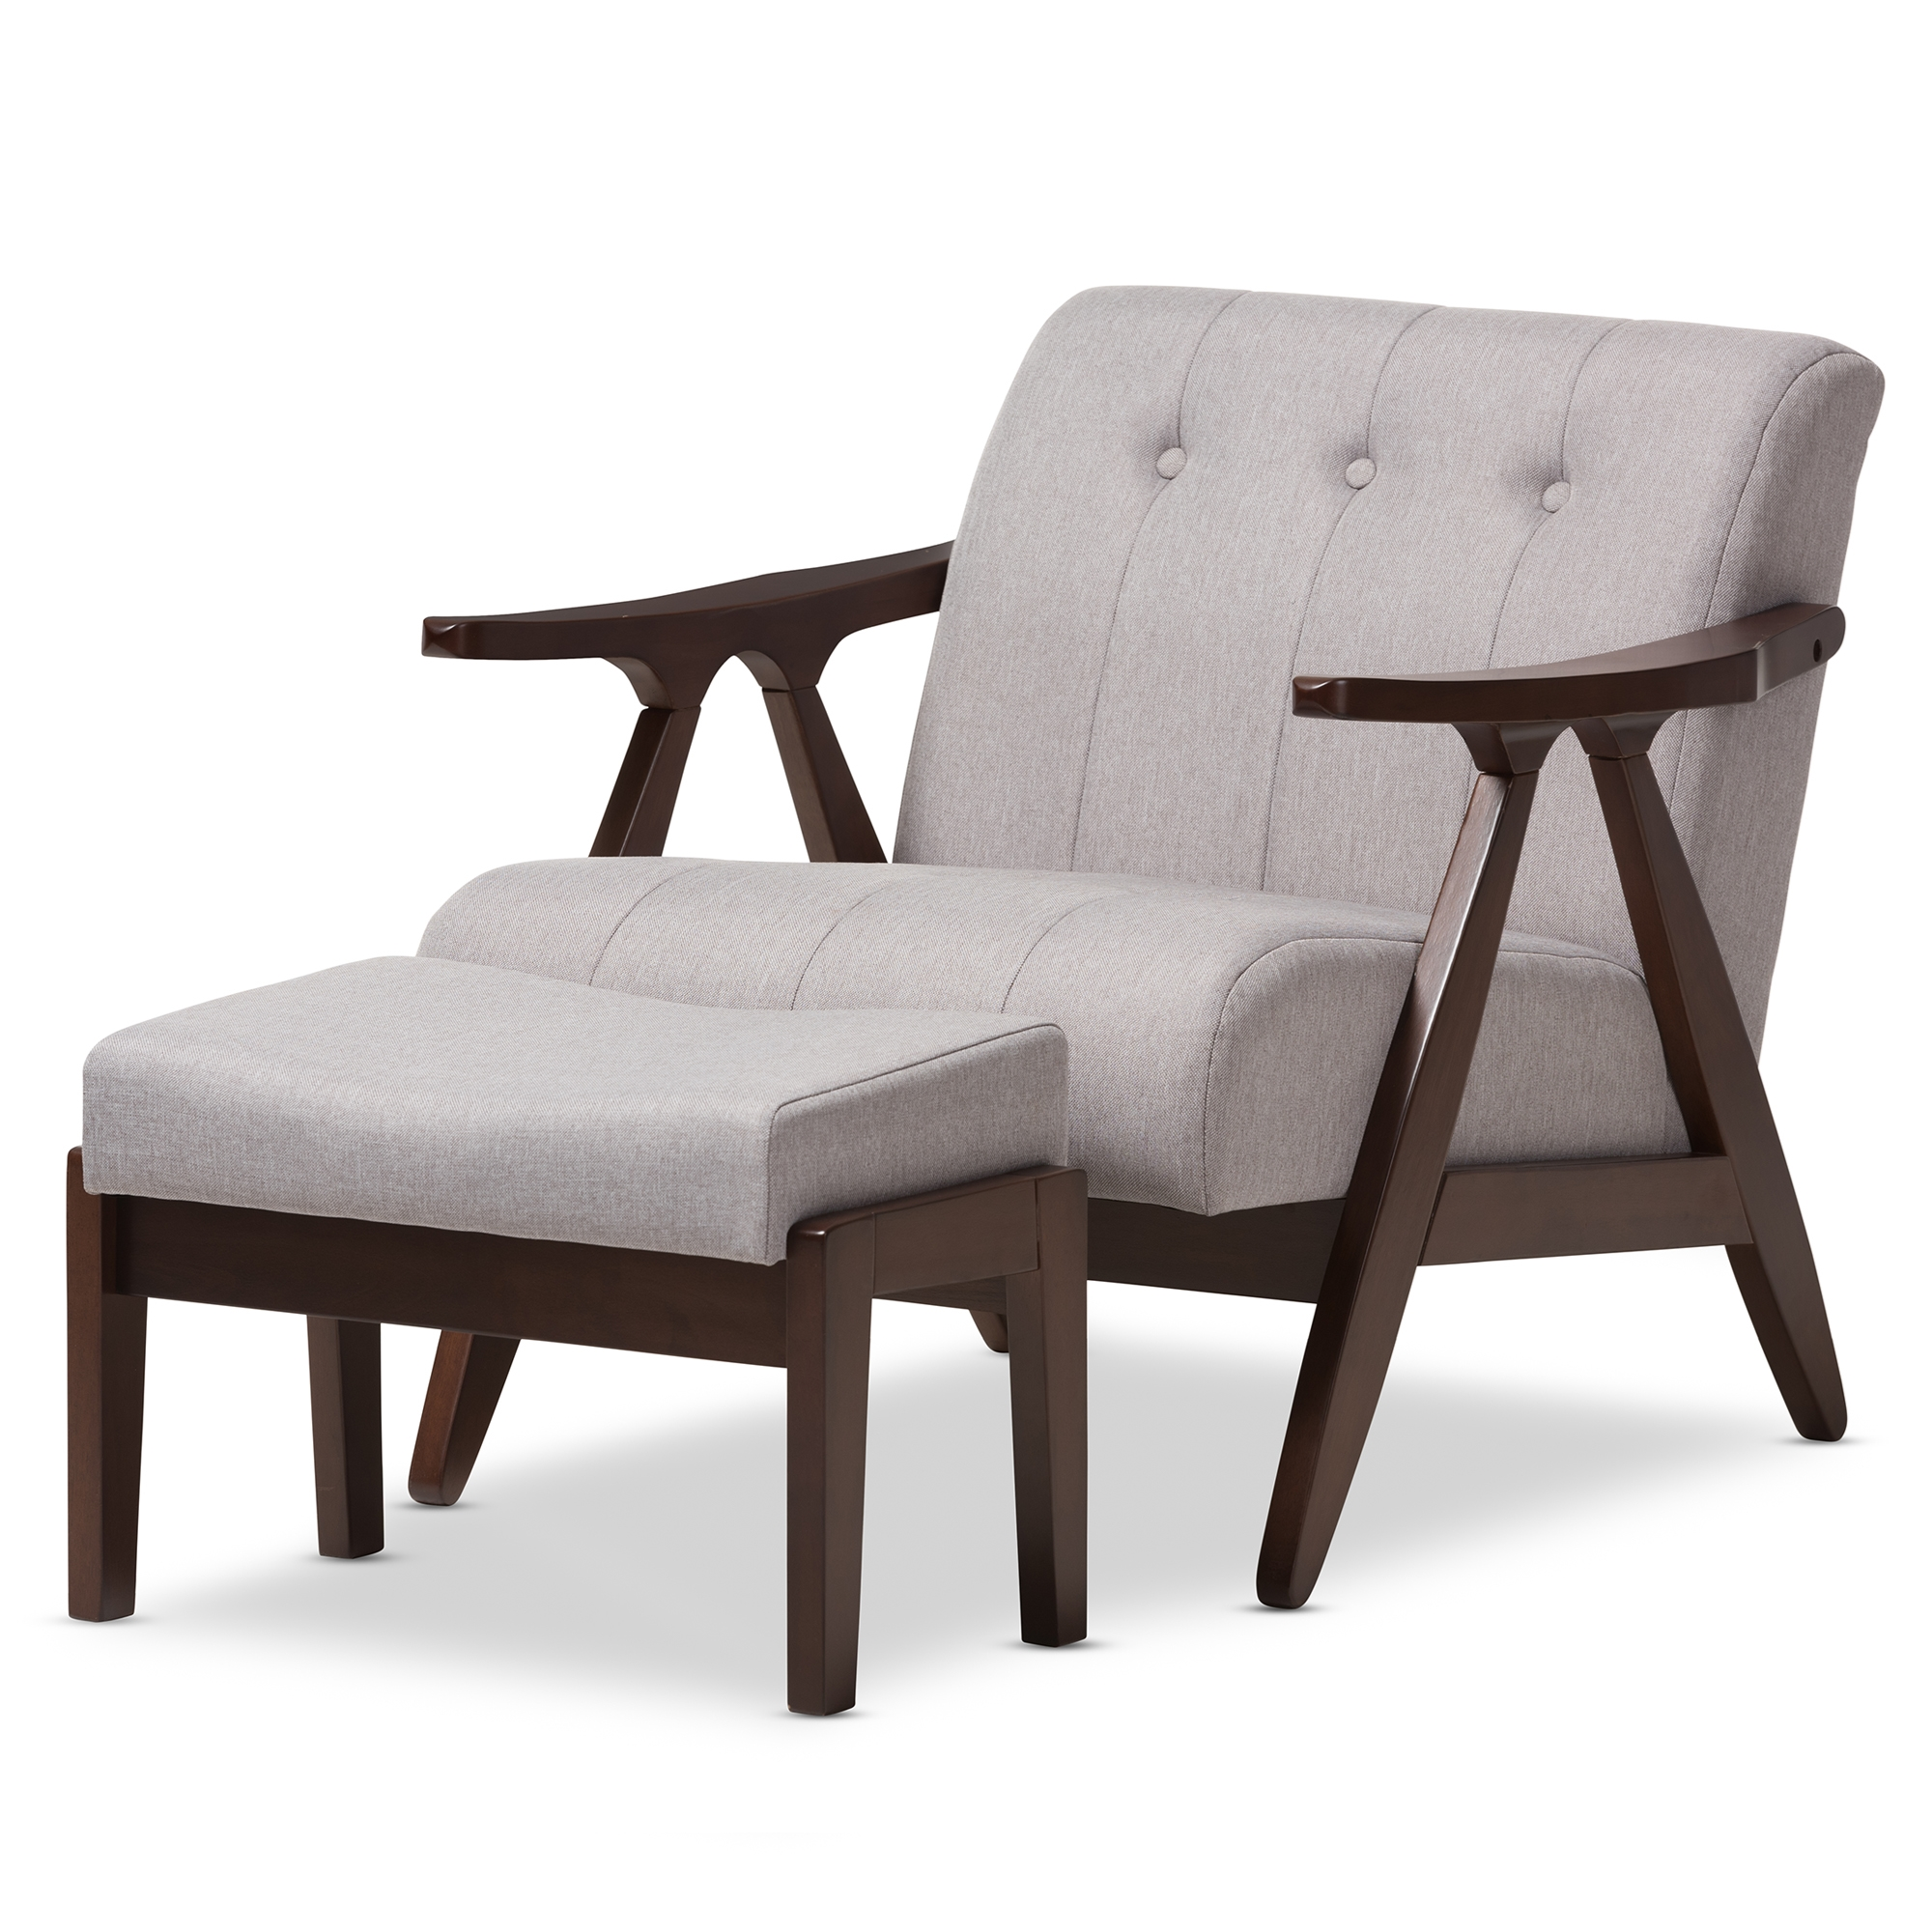 baxton studio enya midcentury modern walnut wood grey fabric lounge chair set baxton studio